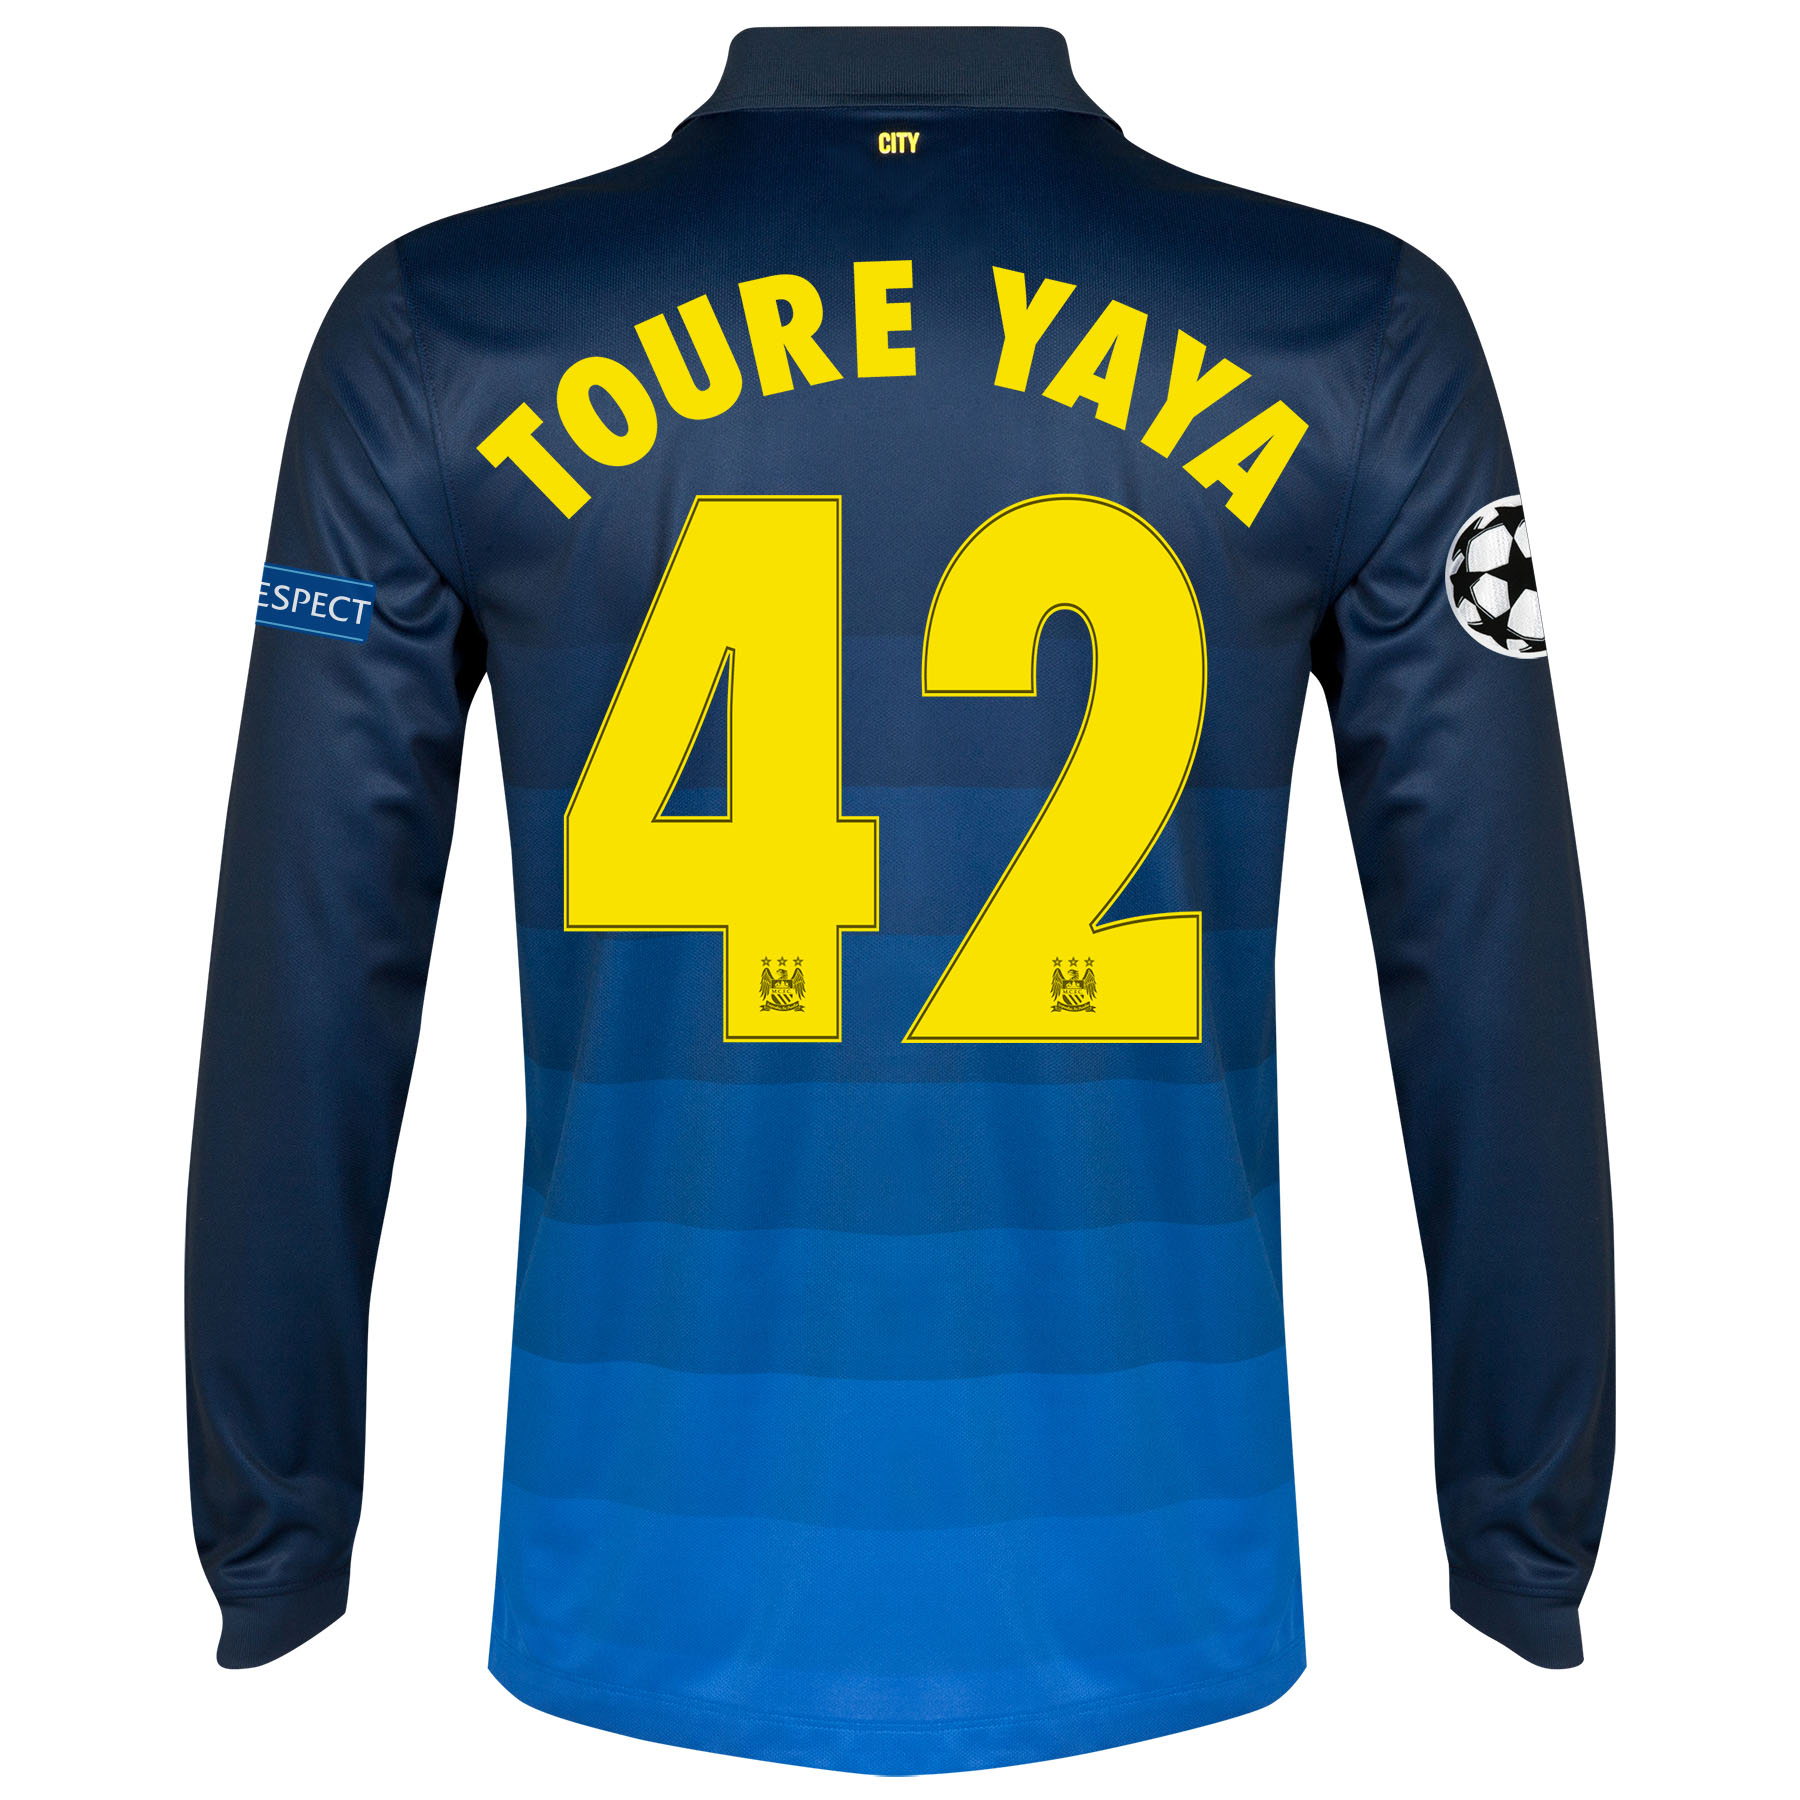 Manchester City UEFA Champions League Away Shirt 2014/15 - Long Sleeve with Toure Yaya 42 printing